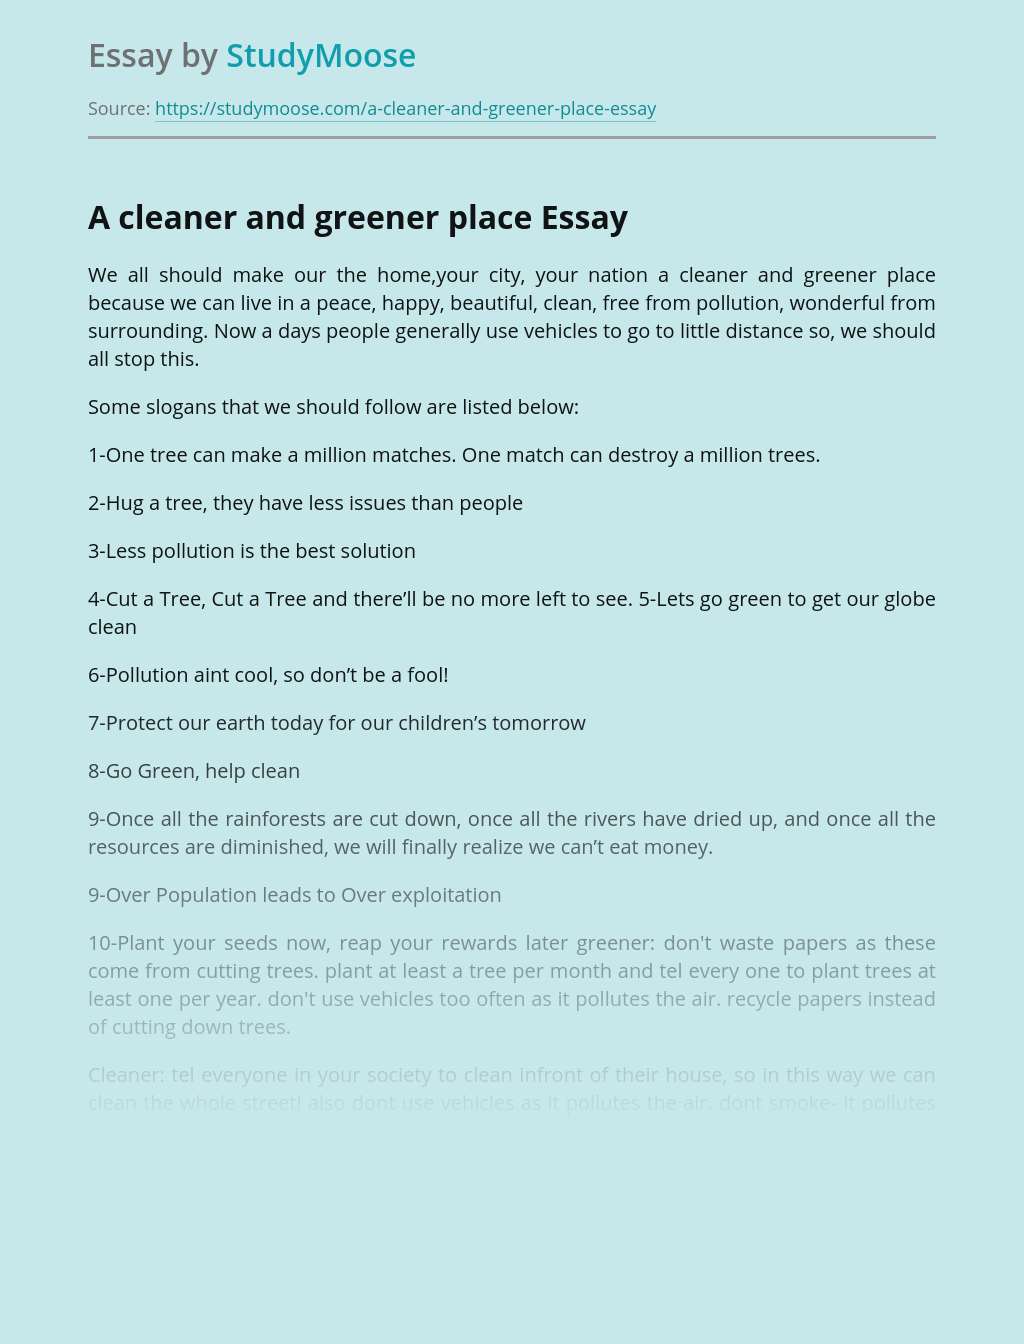 A cleaner and greener place